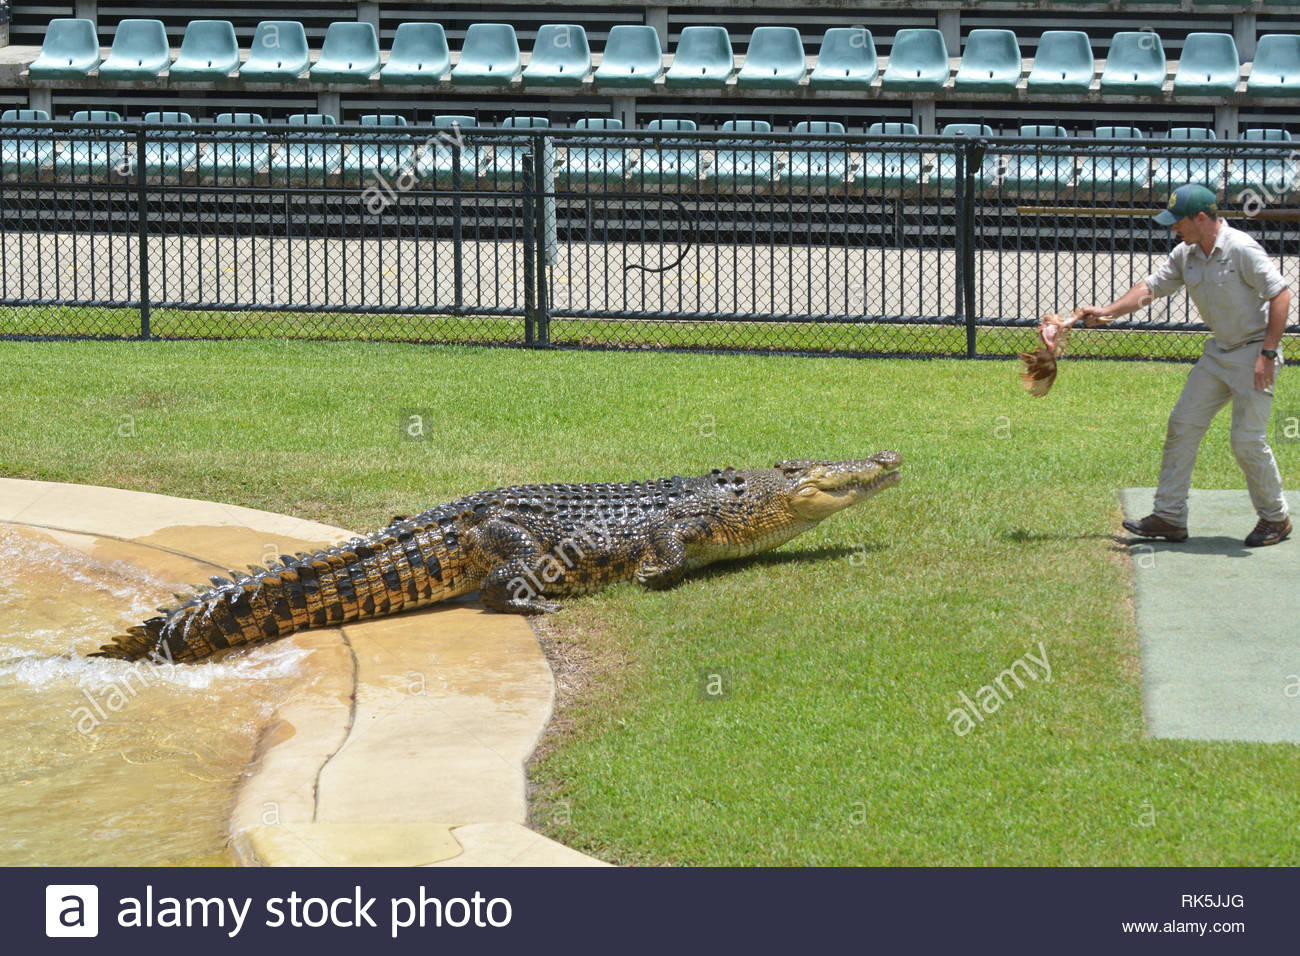 SUNSHINE COAST - JAN 25 2019: Trainer feeding crocodile at Australia Zoo.Crocodile trainer consider as is one of the most dangerous jobs in the world - Stock Image